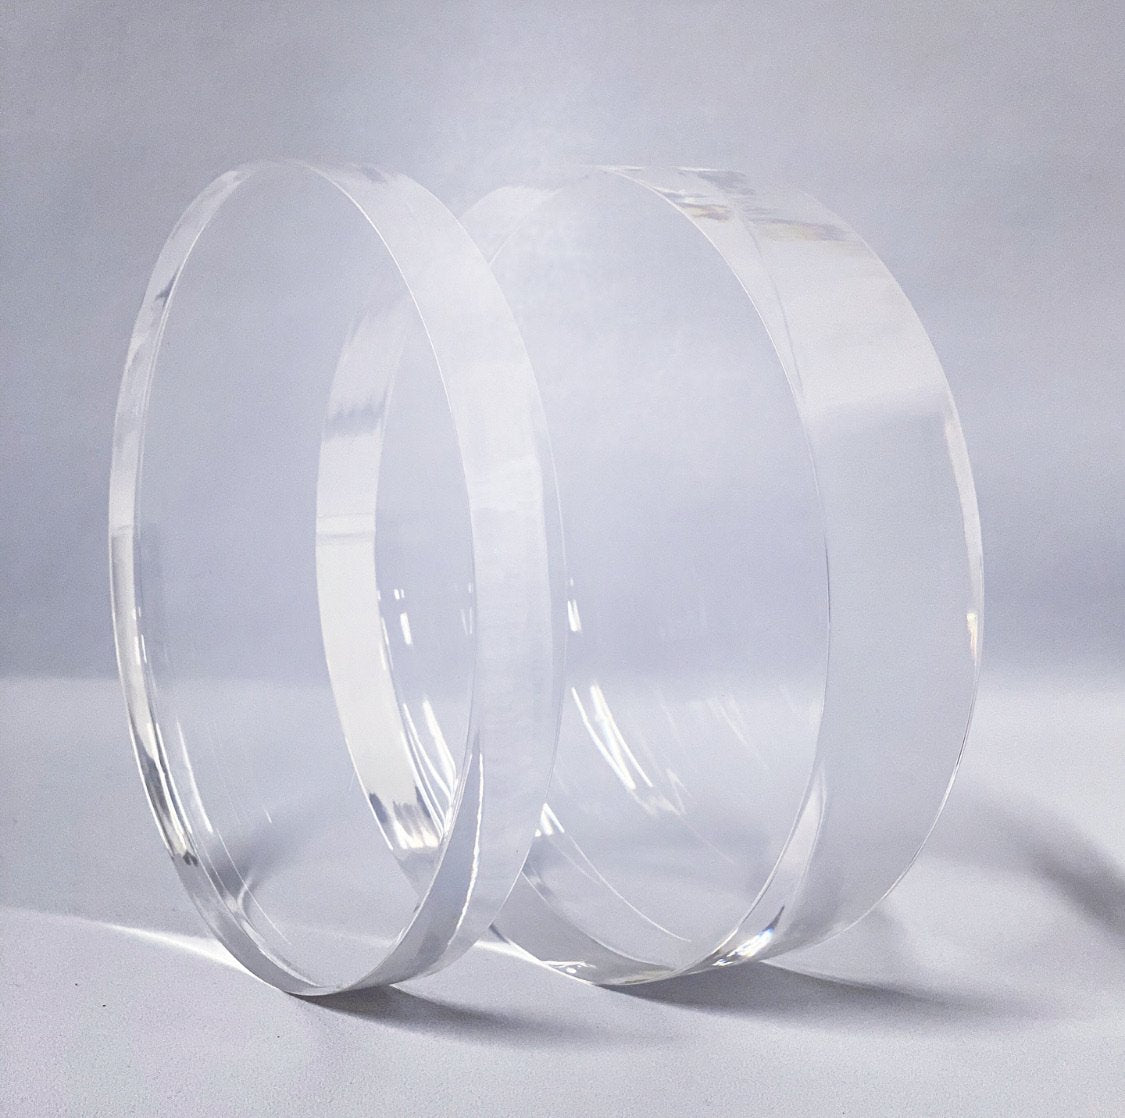 Prop Options ultra polished acrylic spacers and separators 15mm vs 30mm